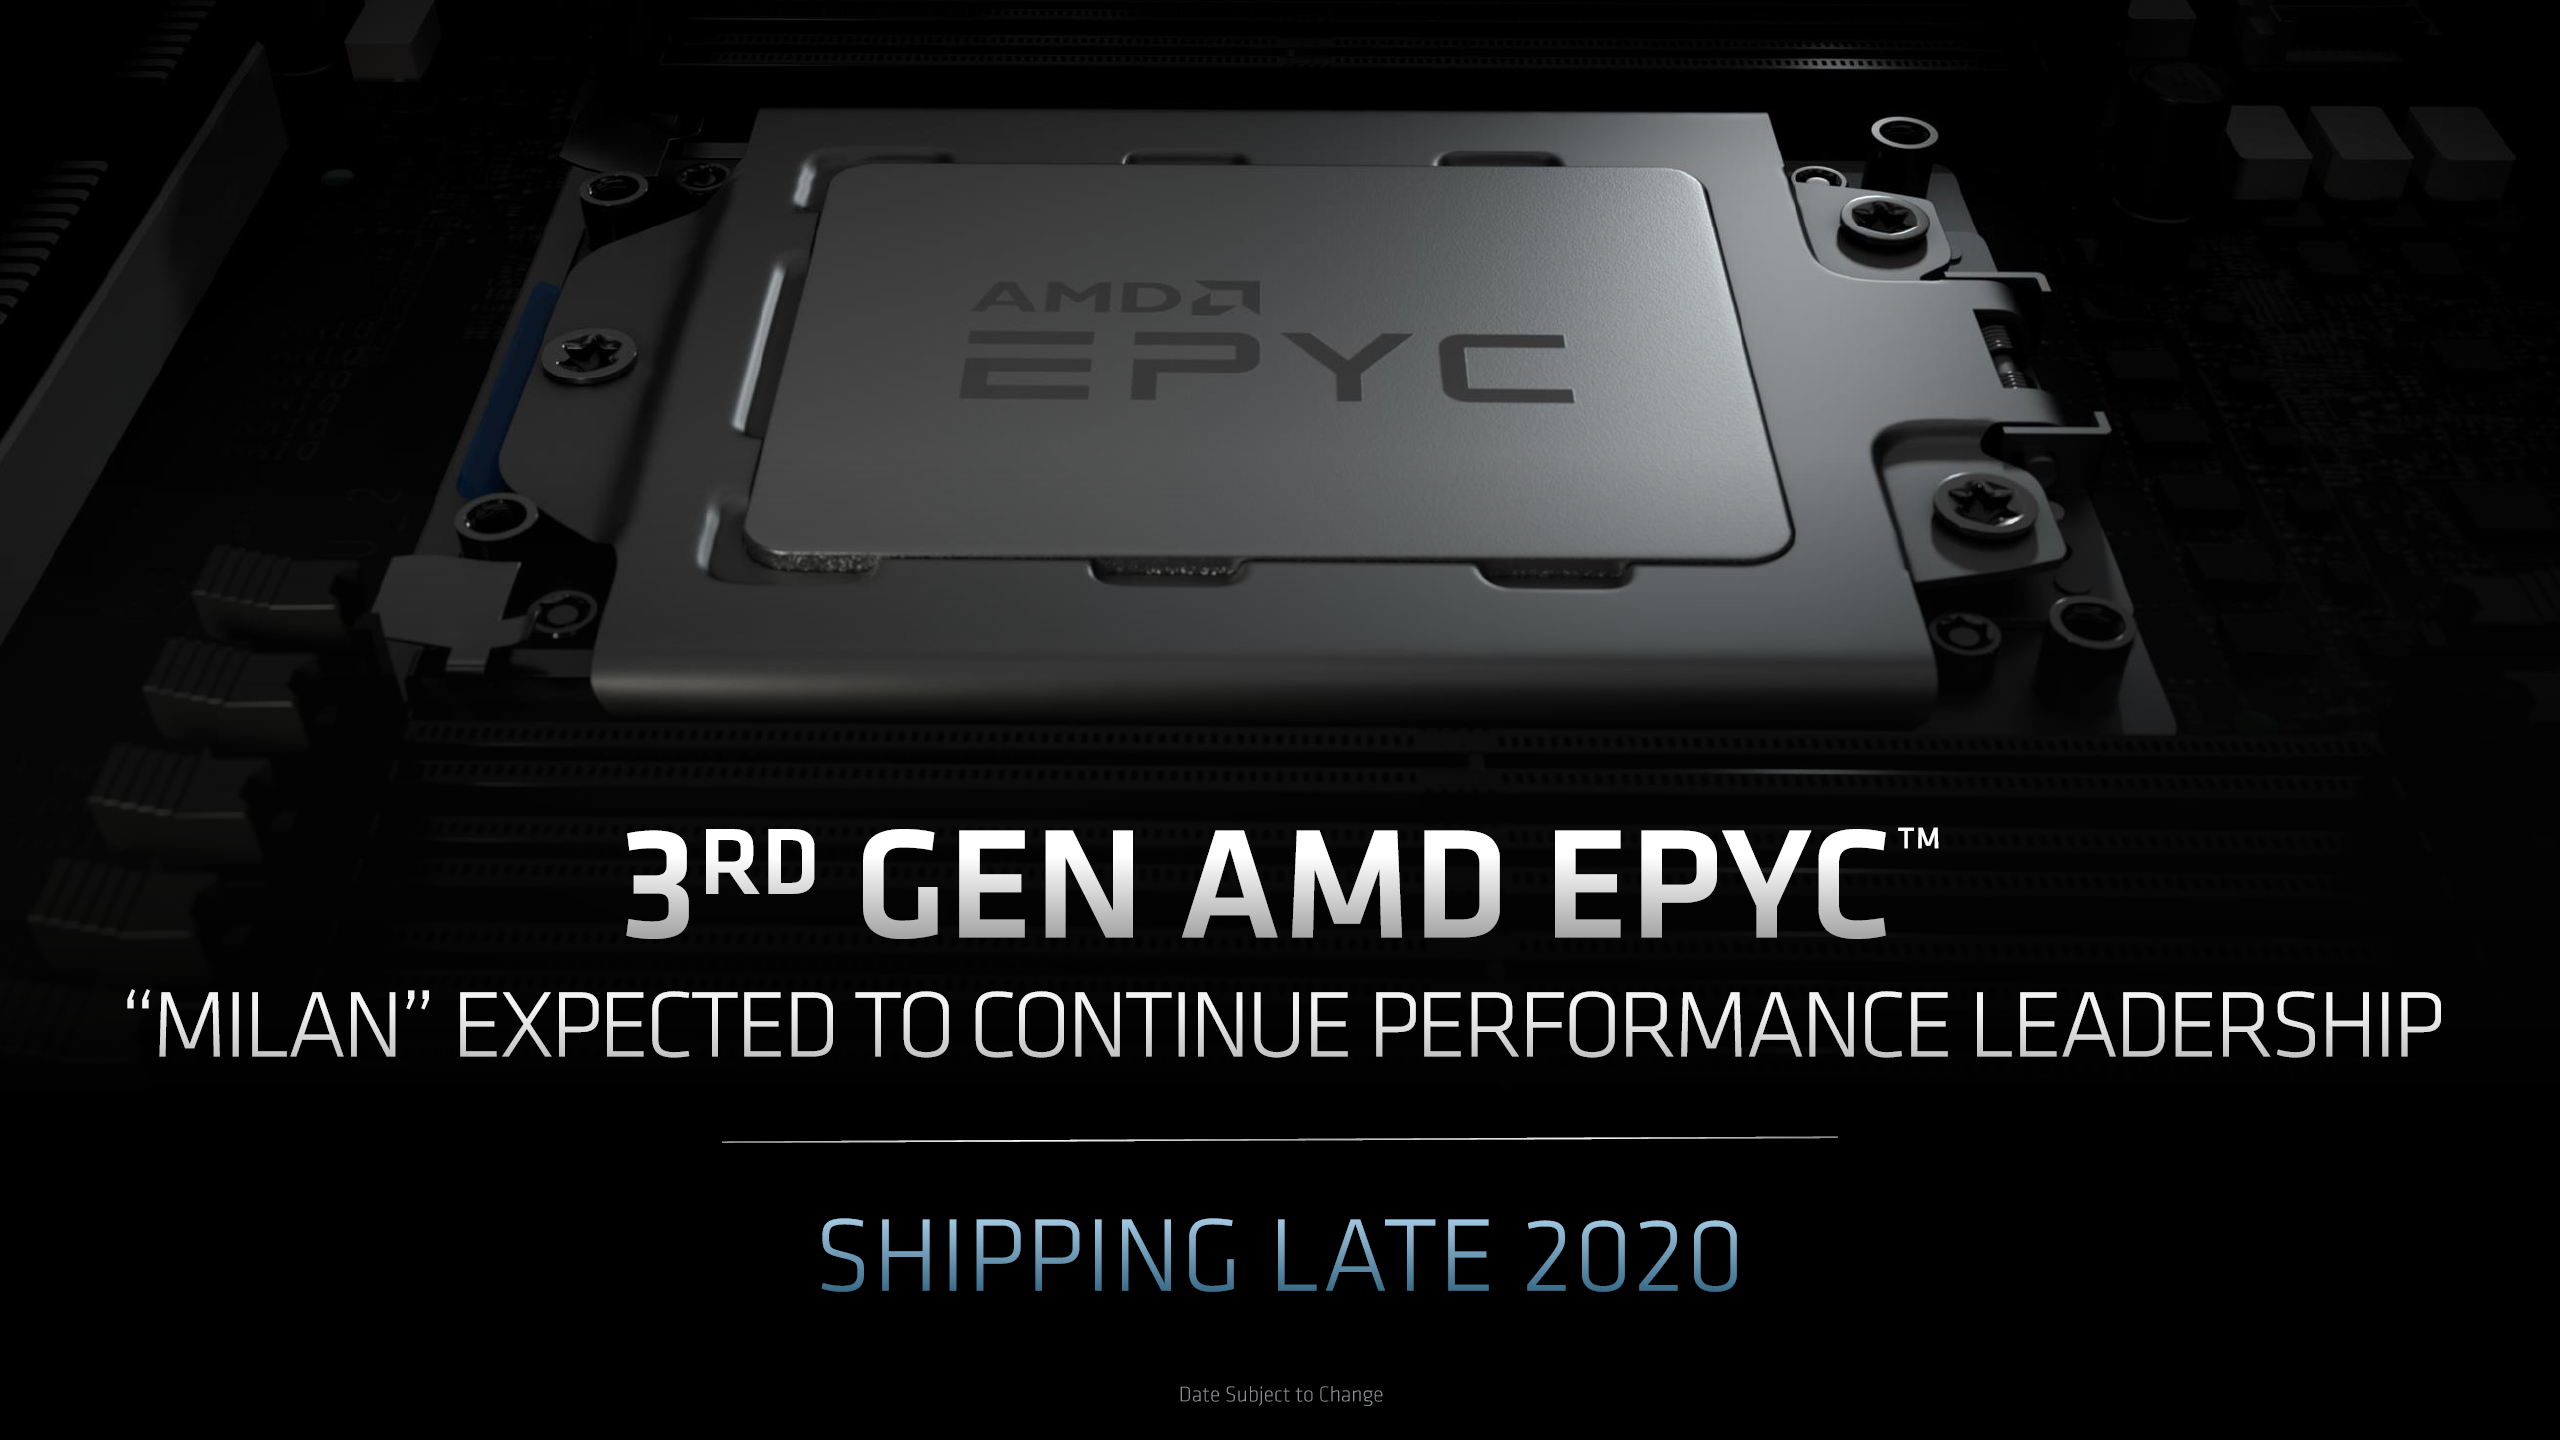 Amd Epyc Milan Cpus With 7nm Zen 3 Leak Out Up To 64 Cores